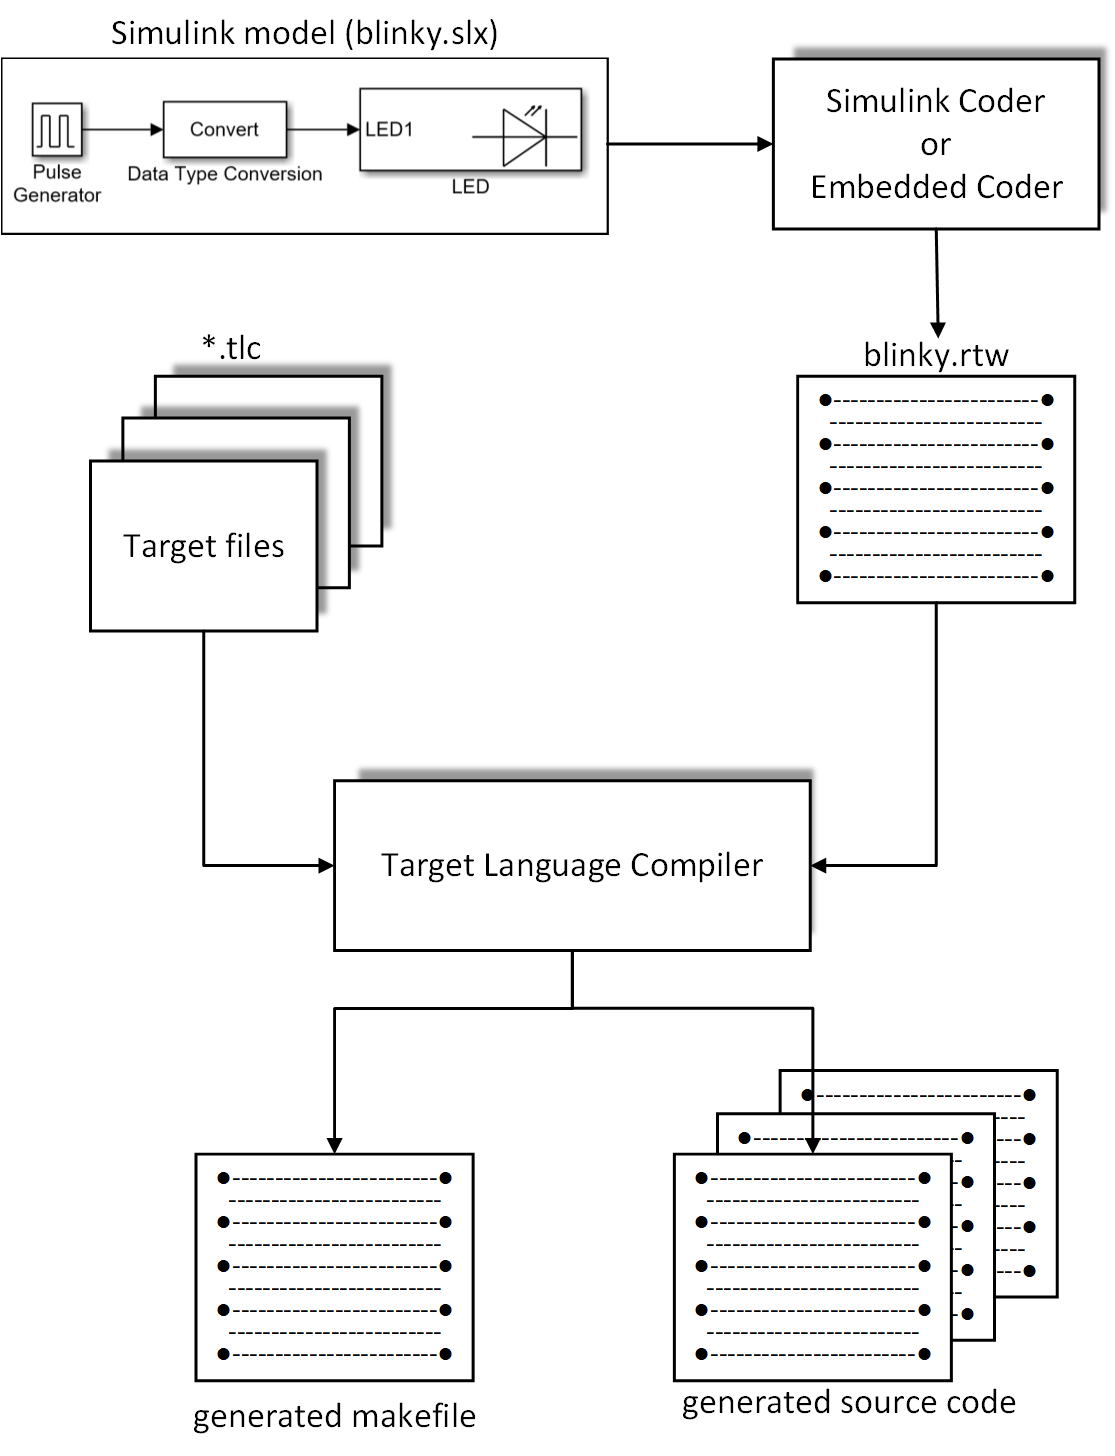 GitHub - ATM-HSW/mbed_target: Mbed OS 5 Simulink and